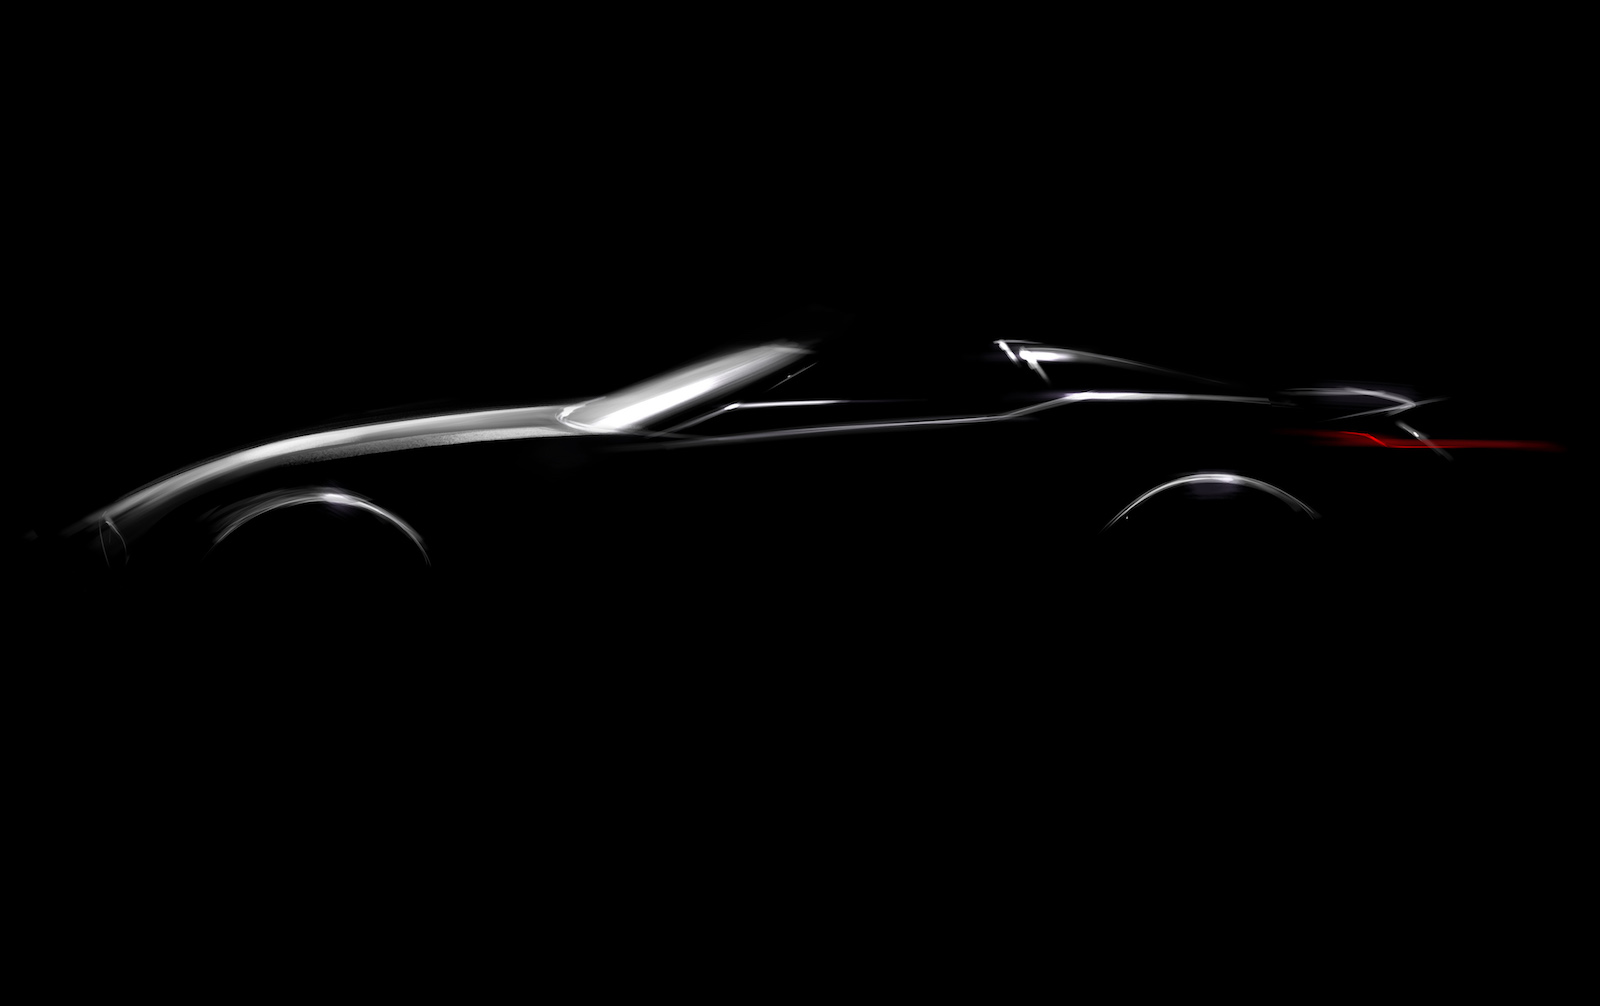 BMW Z4 2017 LEAKED - teaser images reveal new roadster